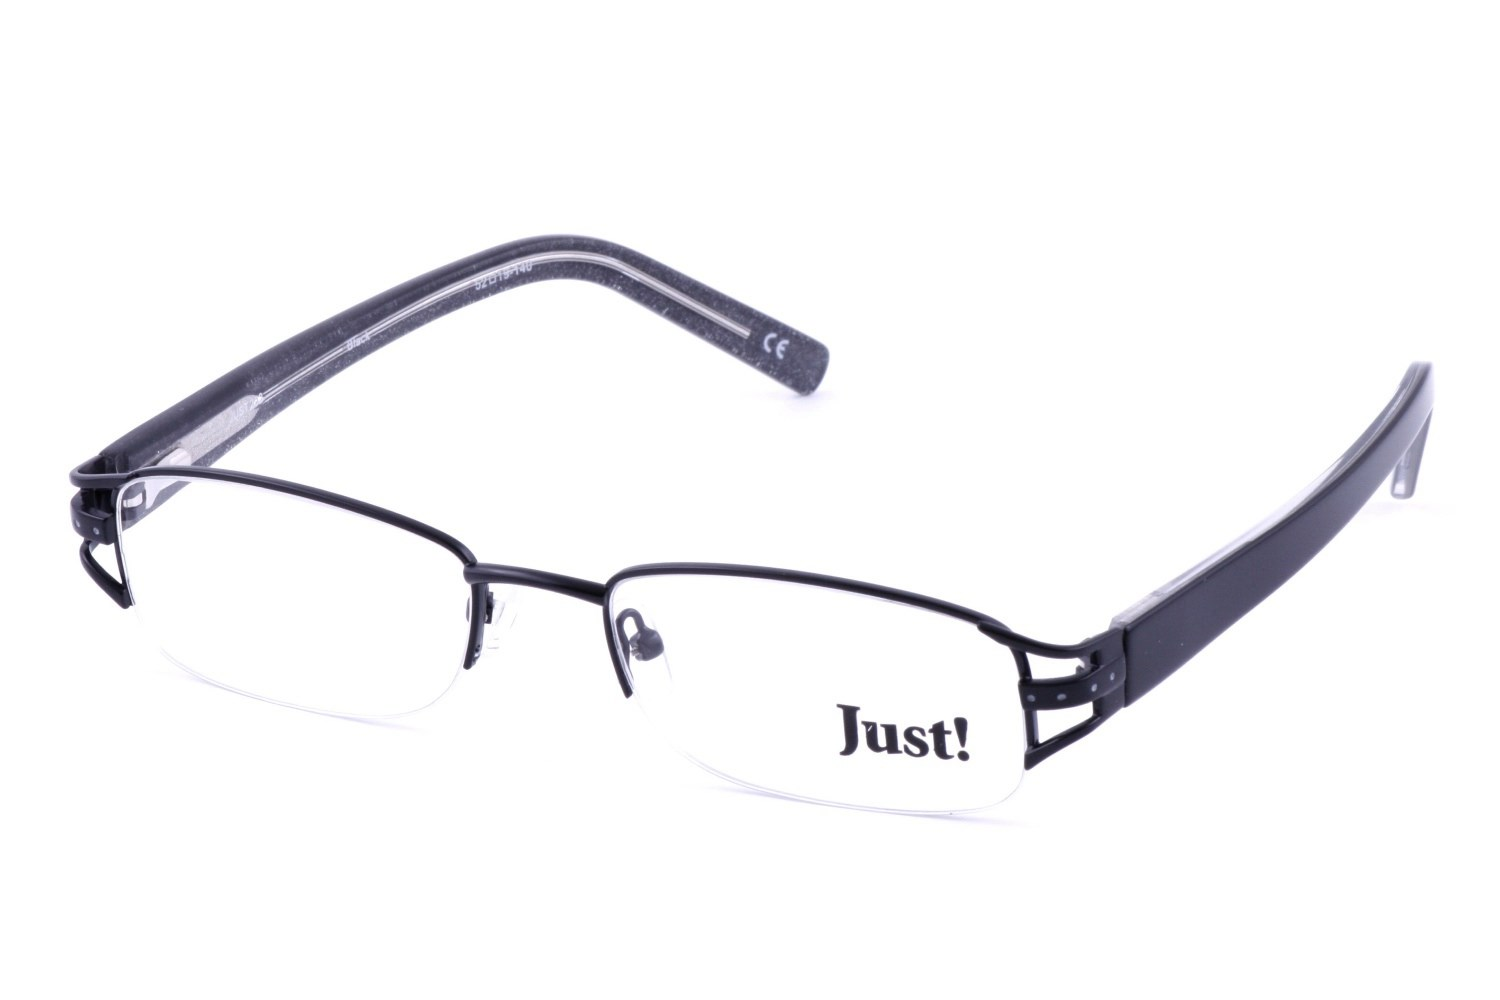 Just 202 Prescription Eyeglasses Frames